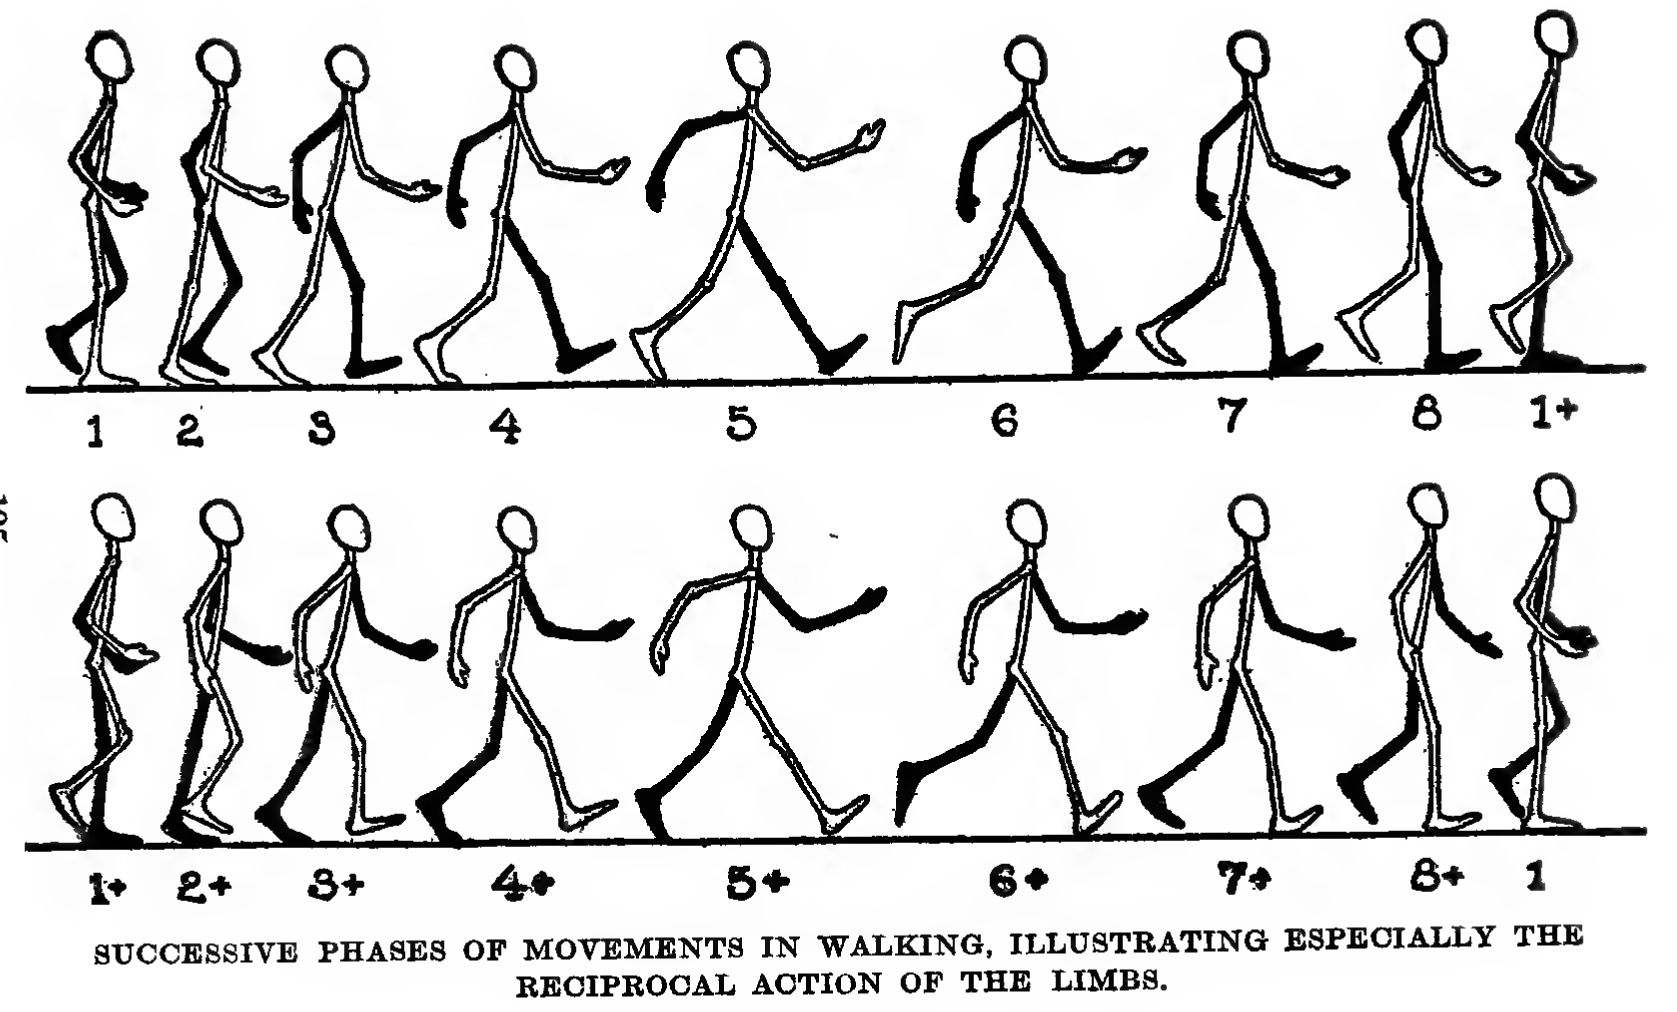 howtodraw-figures-people-walking-03